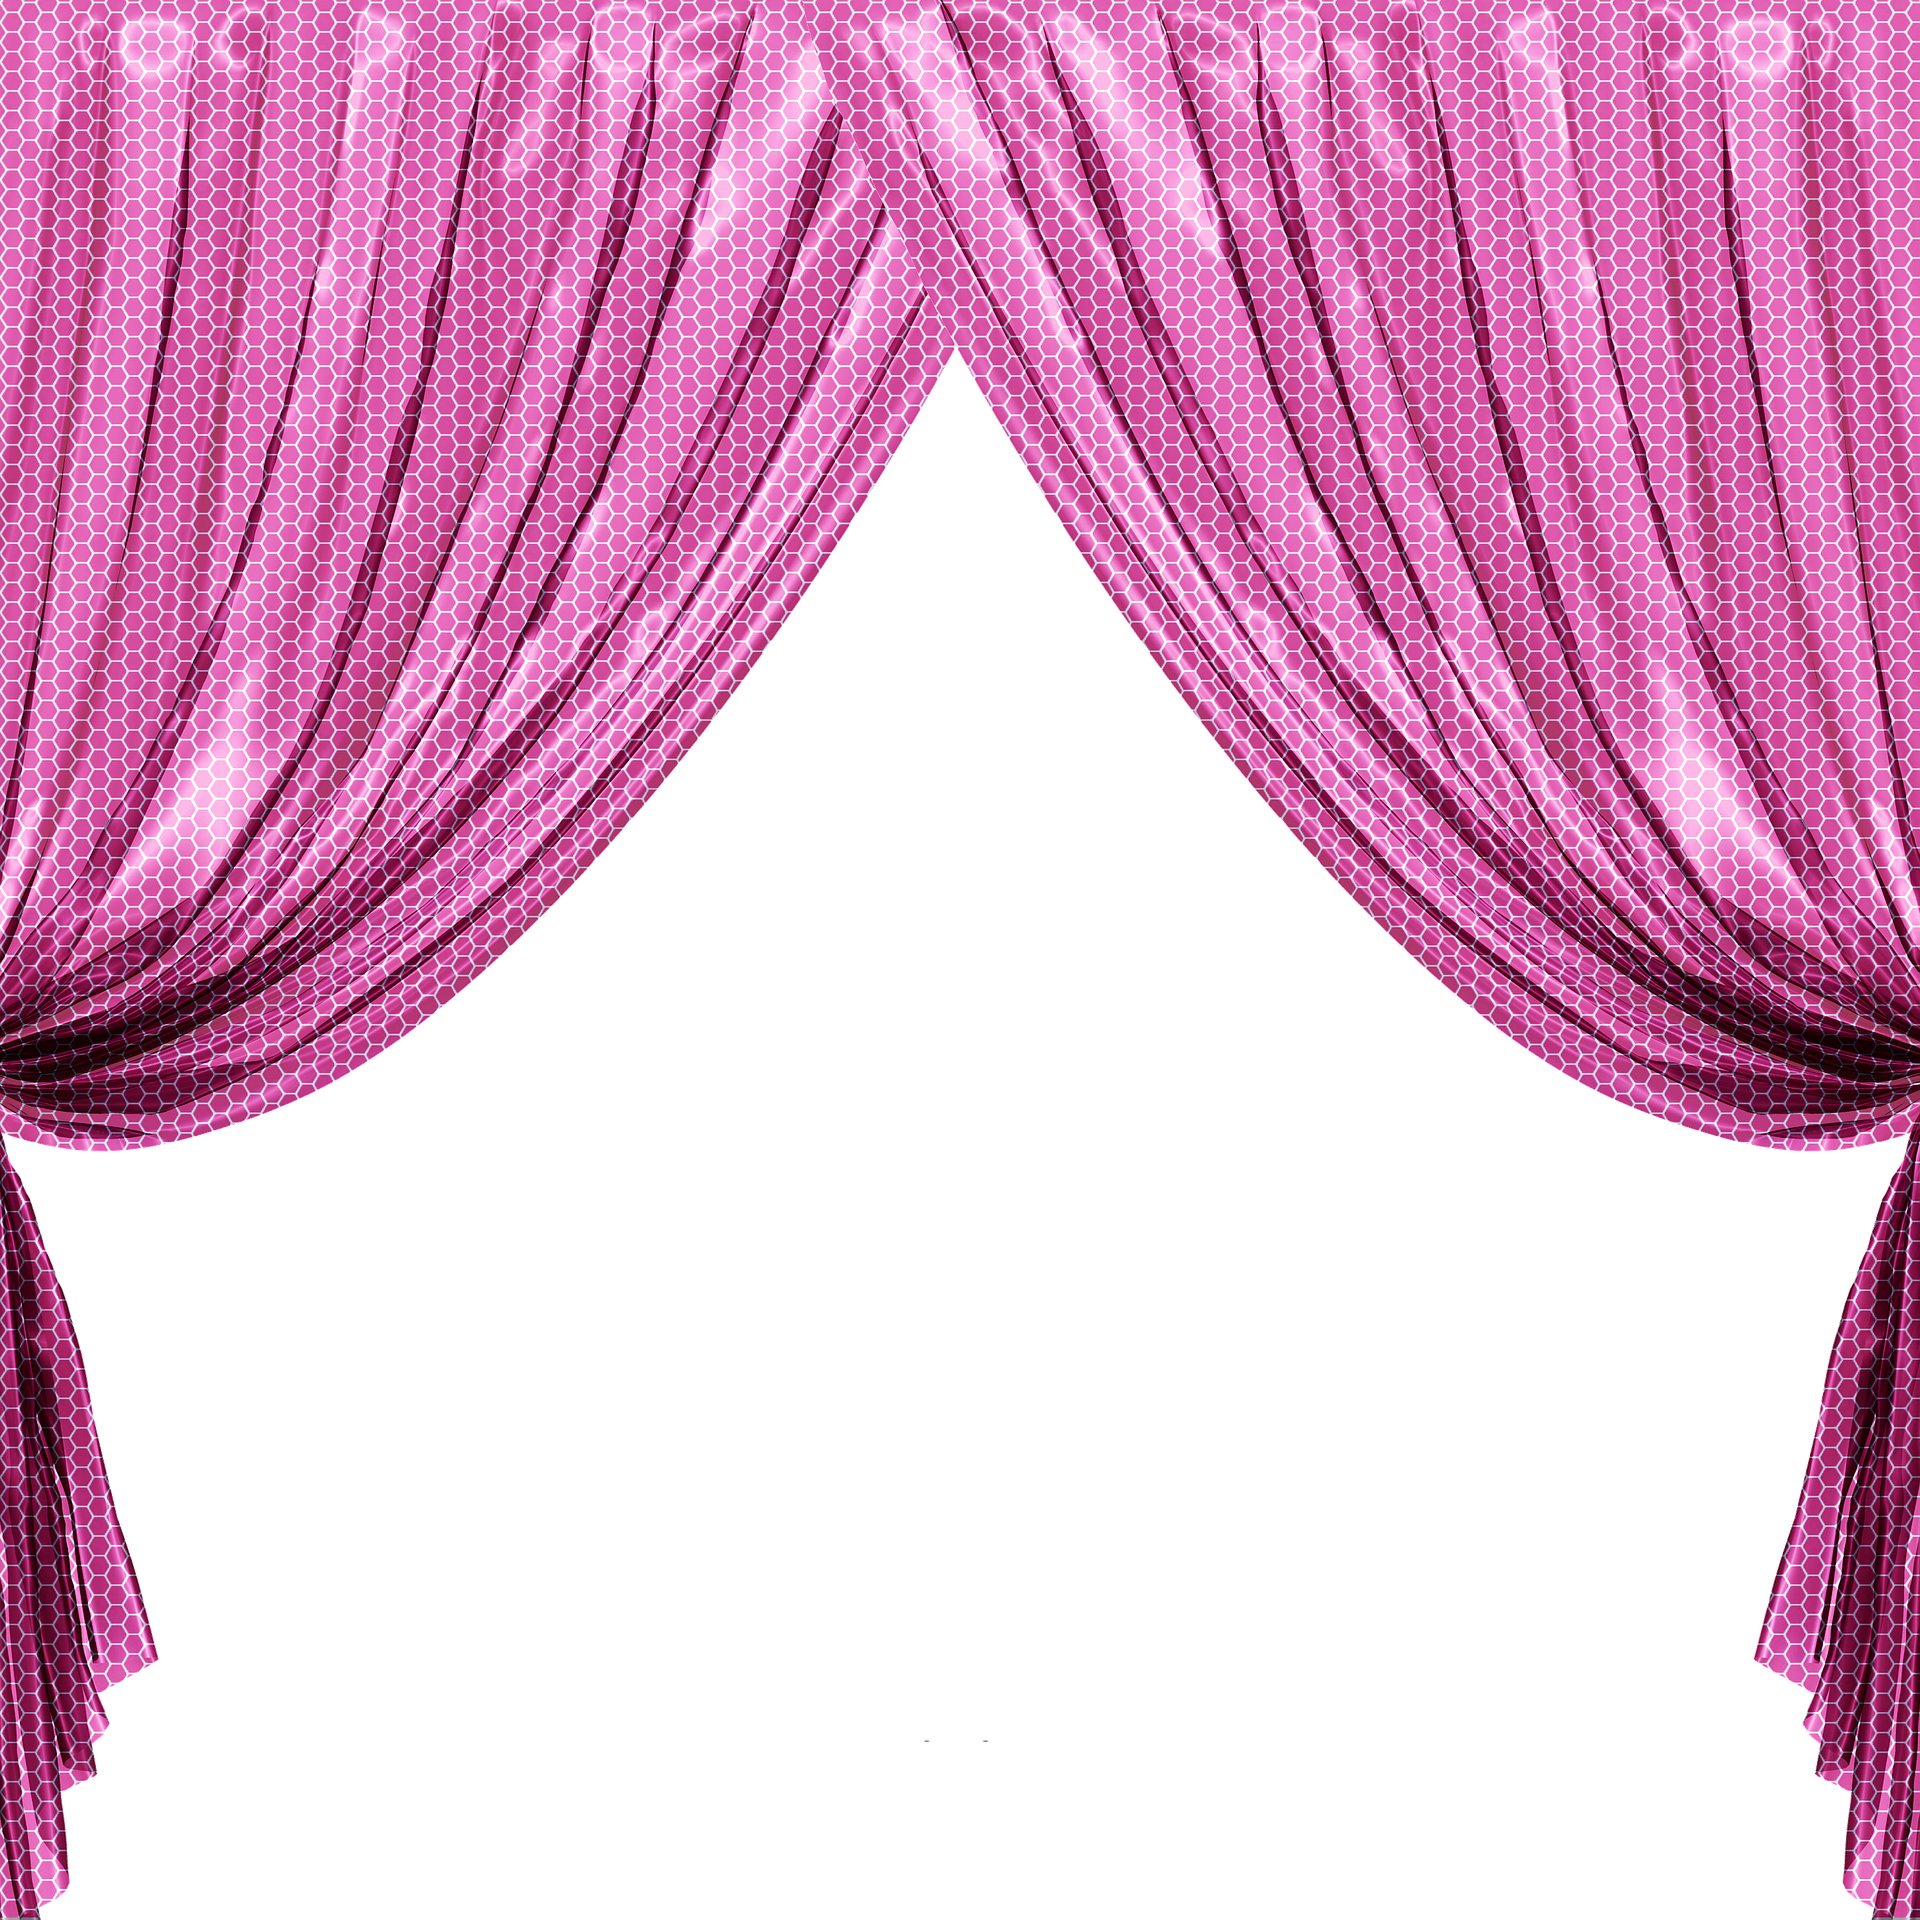 Pink curtain png. Curtains slick blinds cover